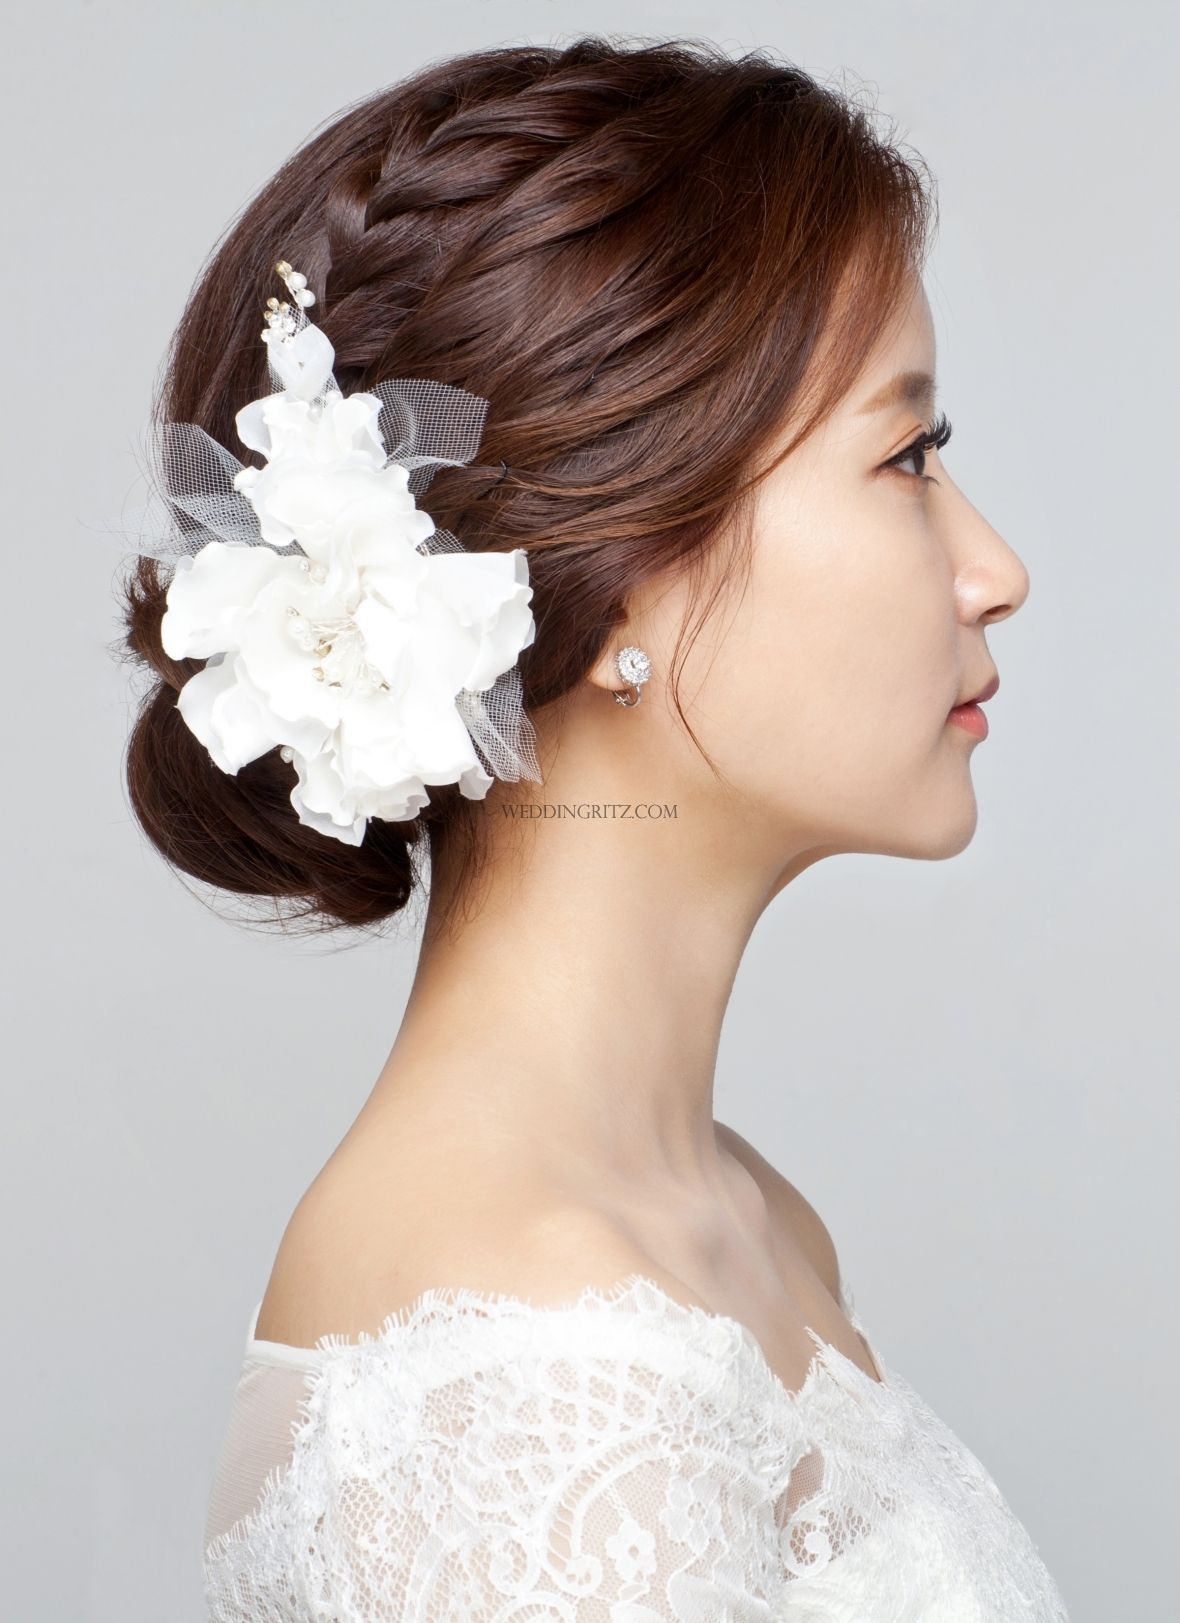 pin by hailing lee on weddings - asia bridal in 2019 | asian